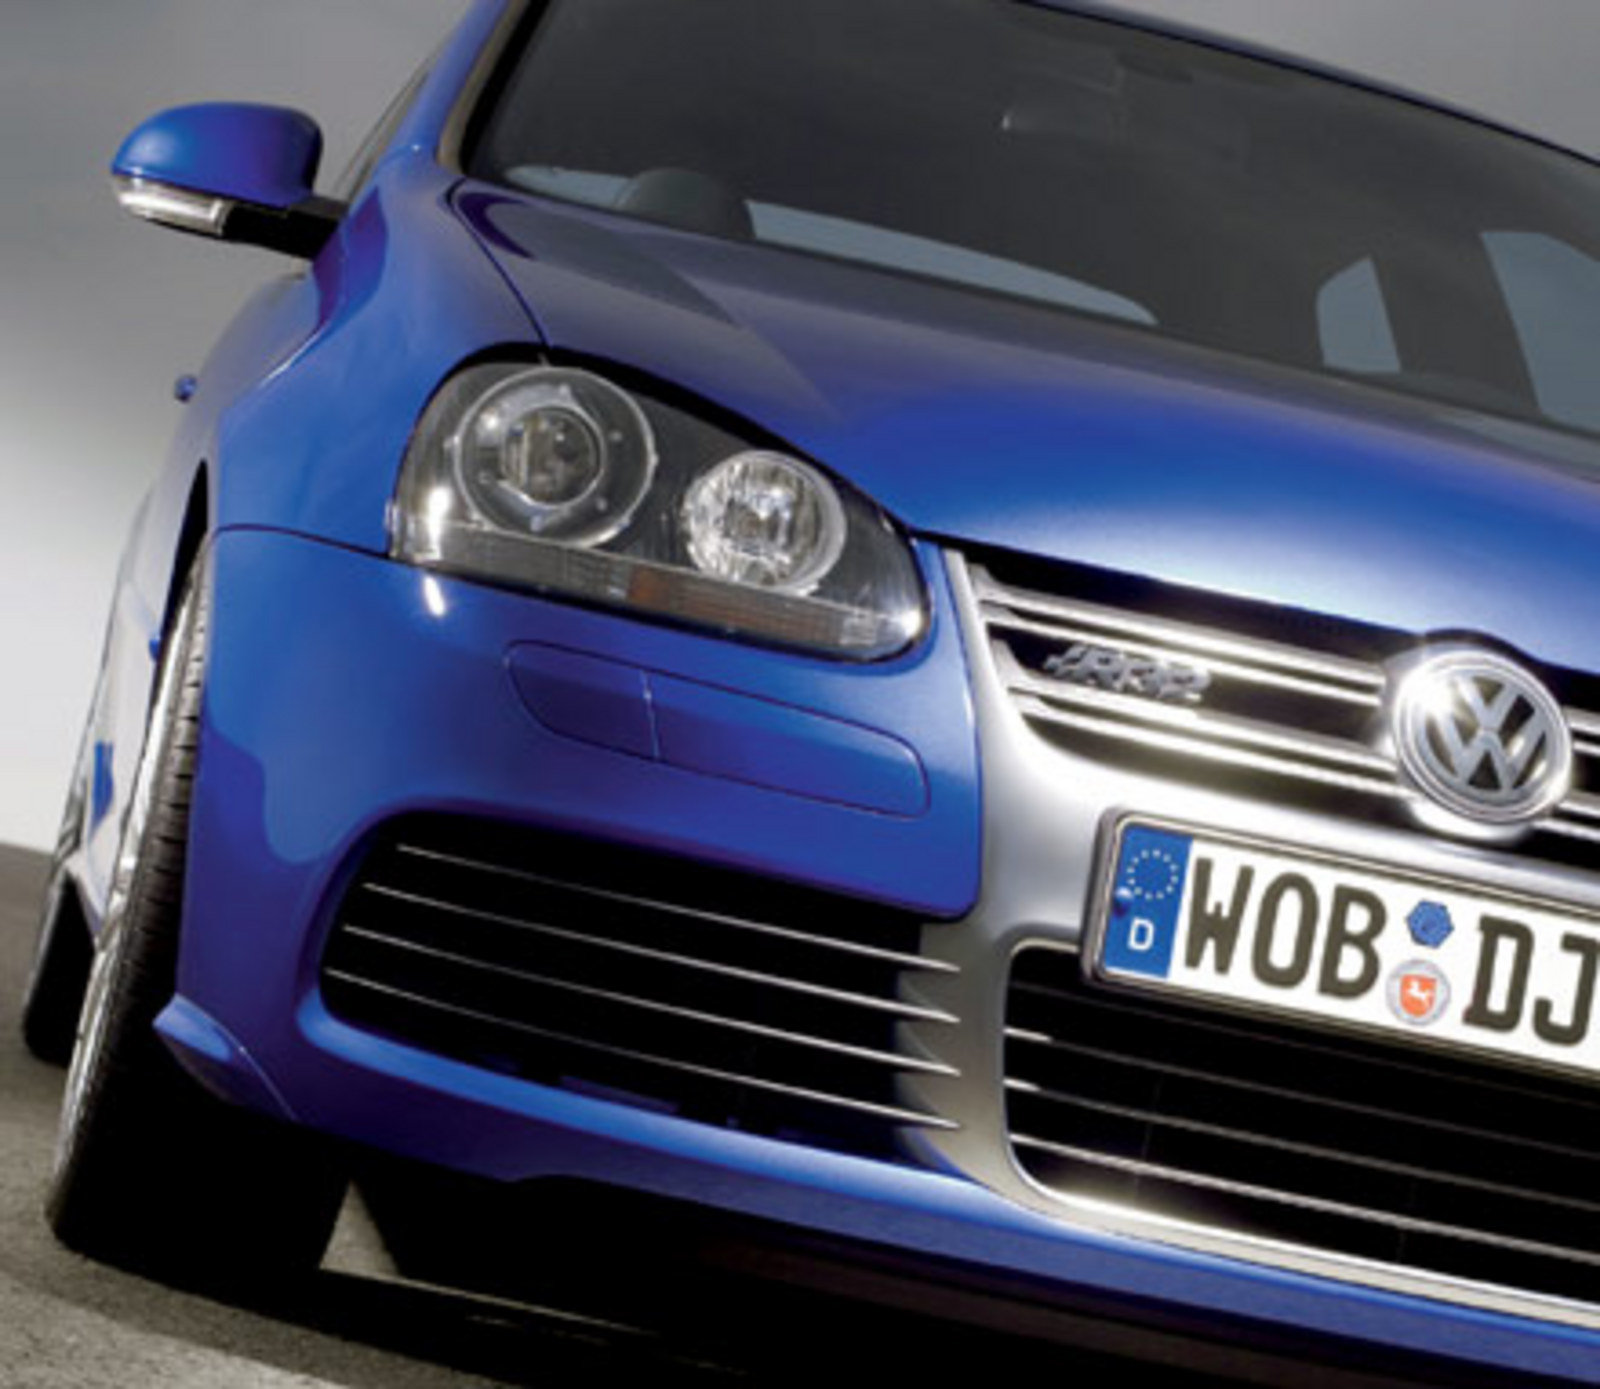 2006 volkswagen golf v r32 review gallery top speed. Black Bedroom Furniture Sets. Home Design Ideas